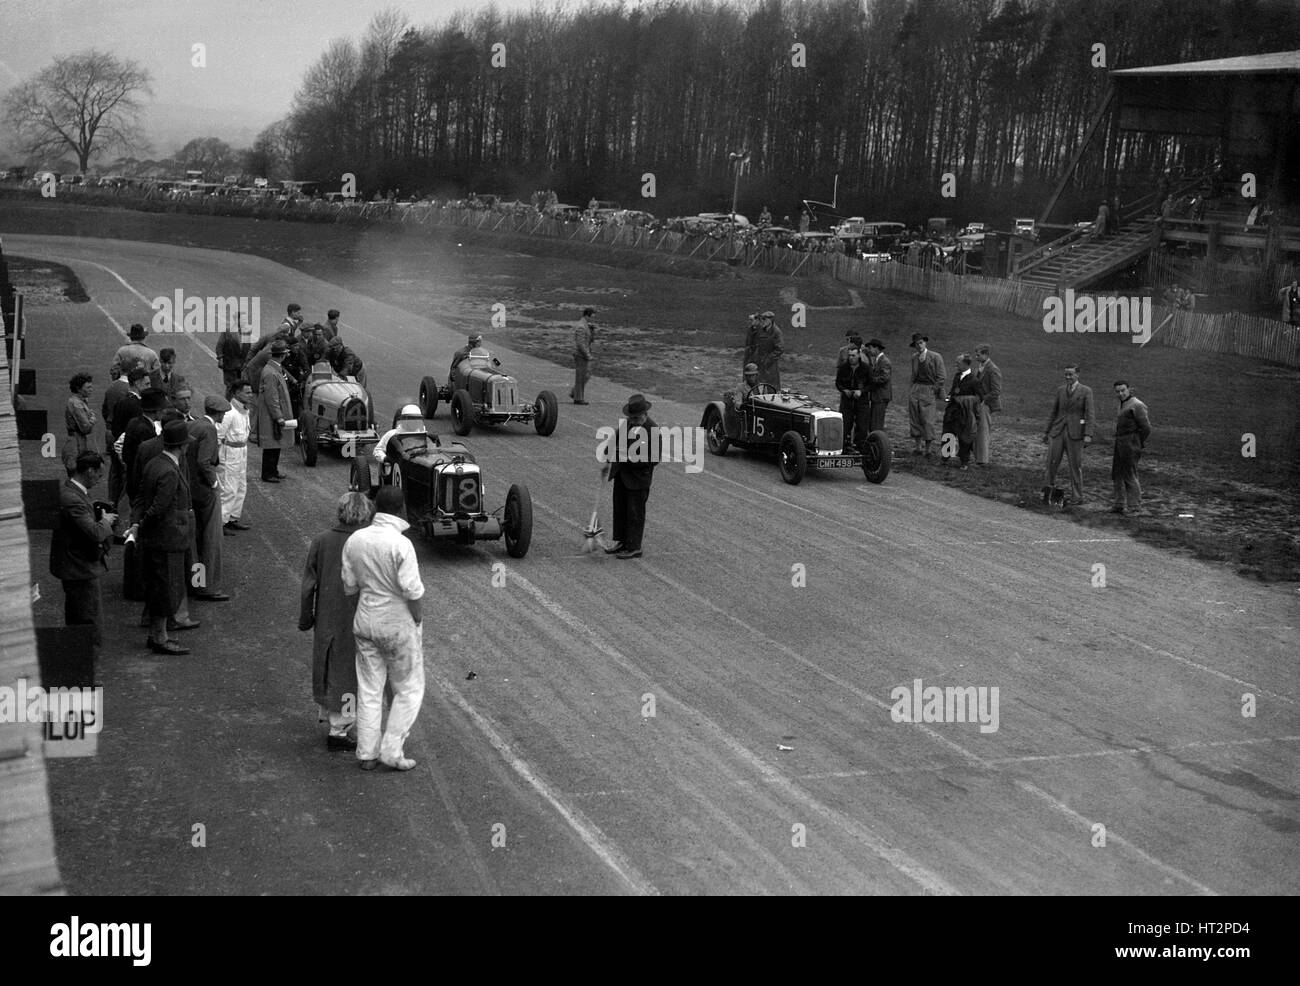 MG Q type, Frazer-Nash Shelsley and Bugatti Type 51 on the starting grid at Donington Park, 1930s. Artist: Bill - Stock Image